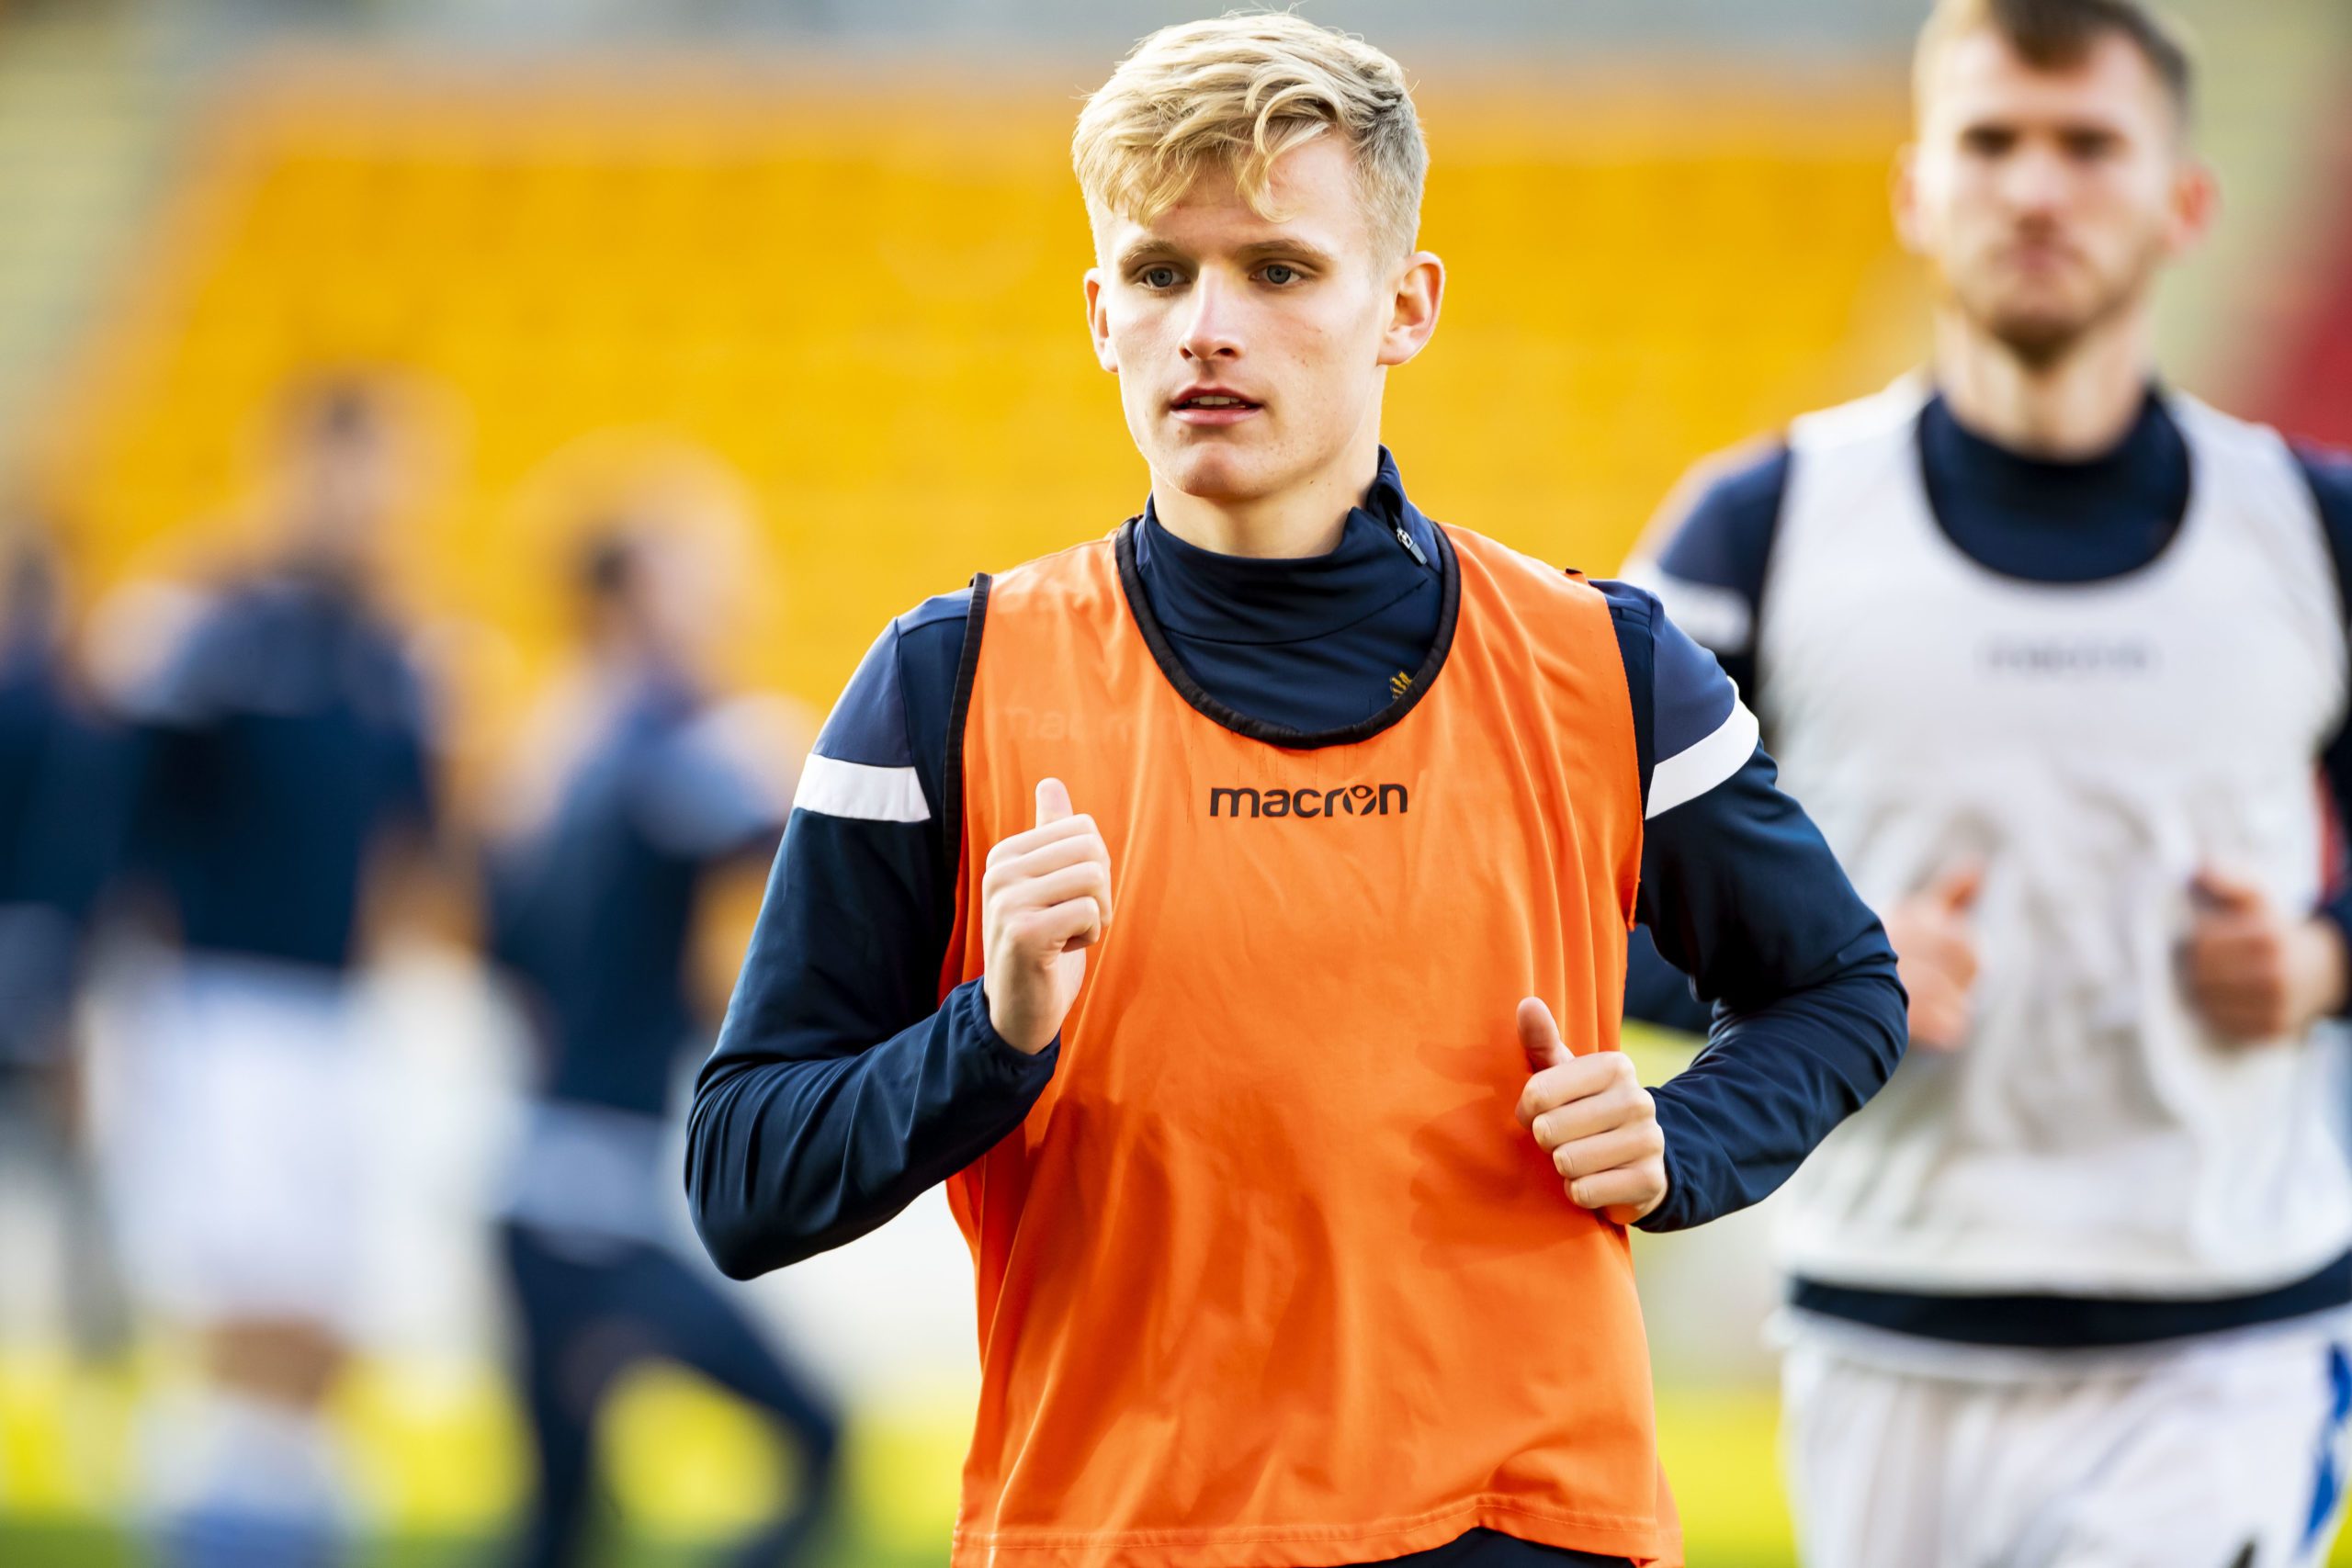 St Johnstone's Ali McCann, who was reportedly scouted by Celtic